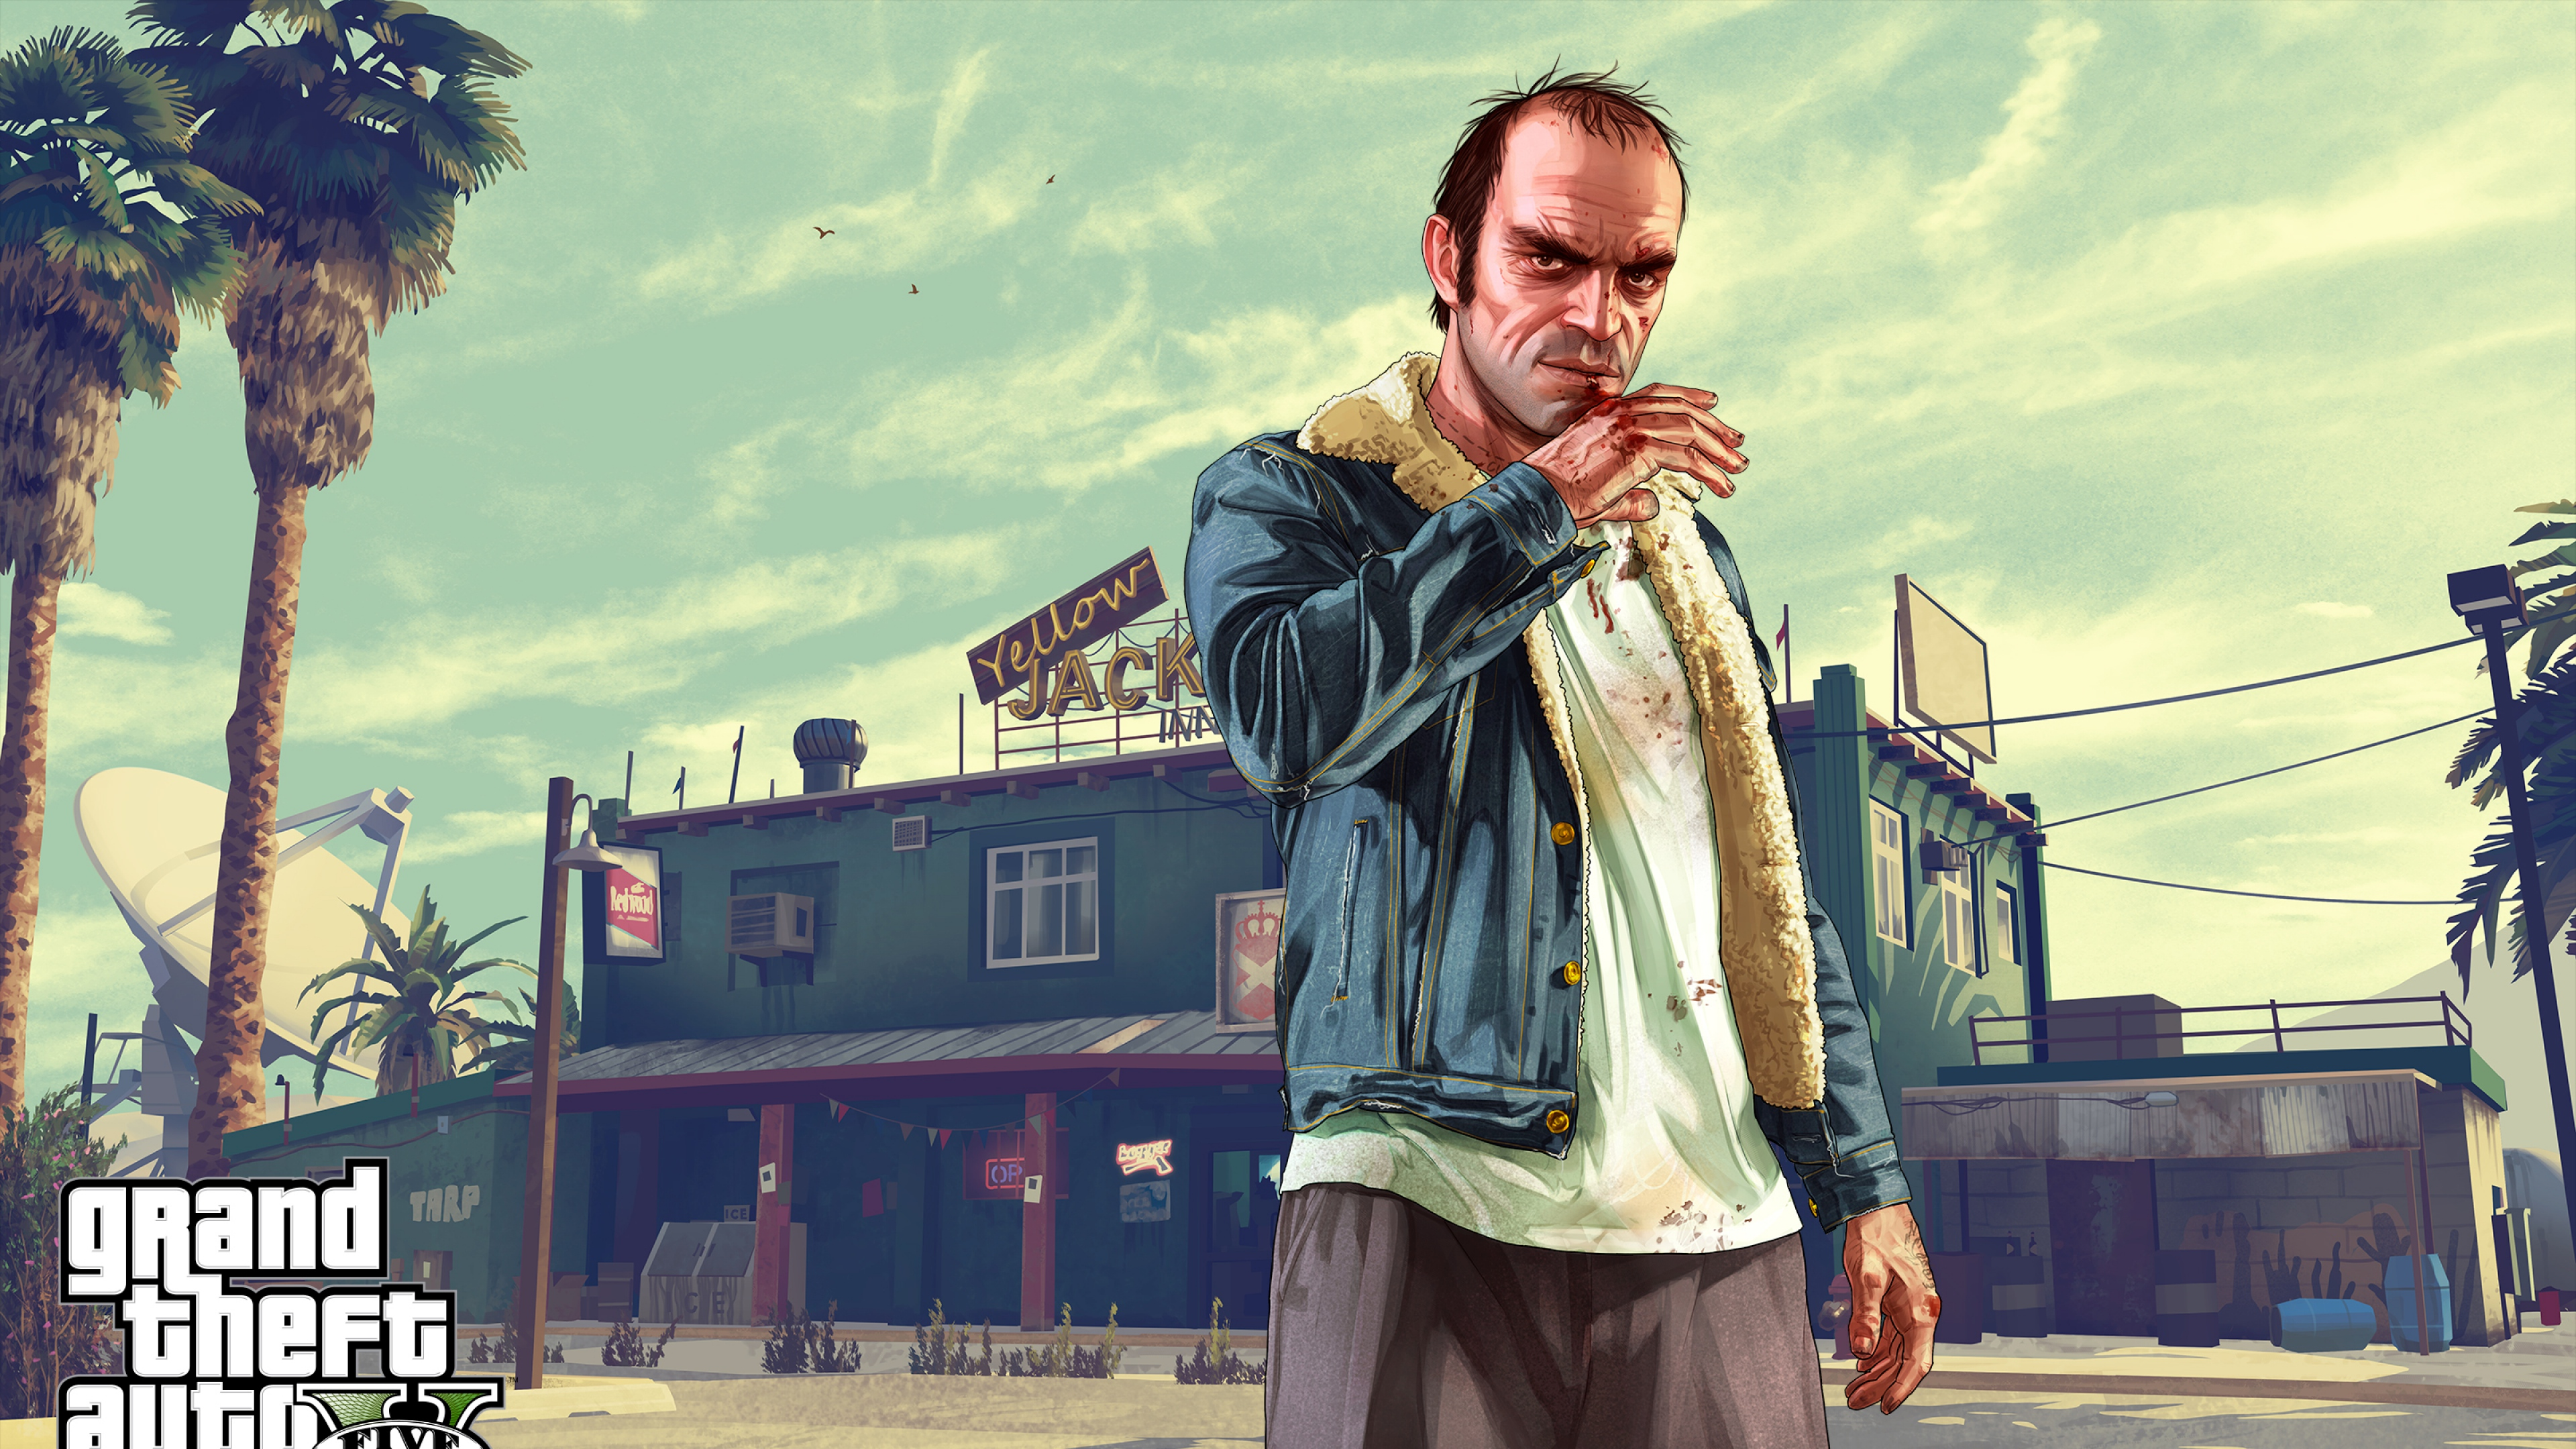 grand theft auto v wallpaper iphone